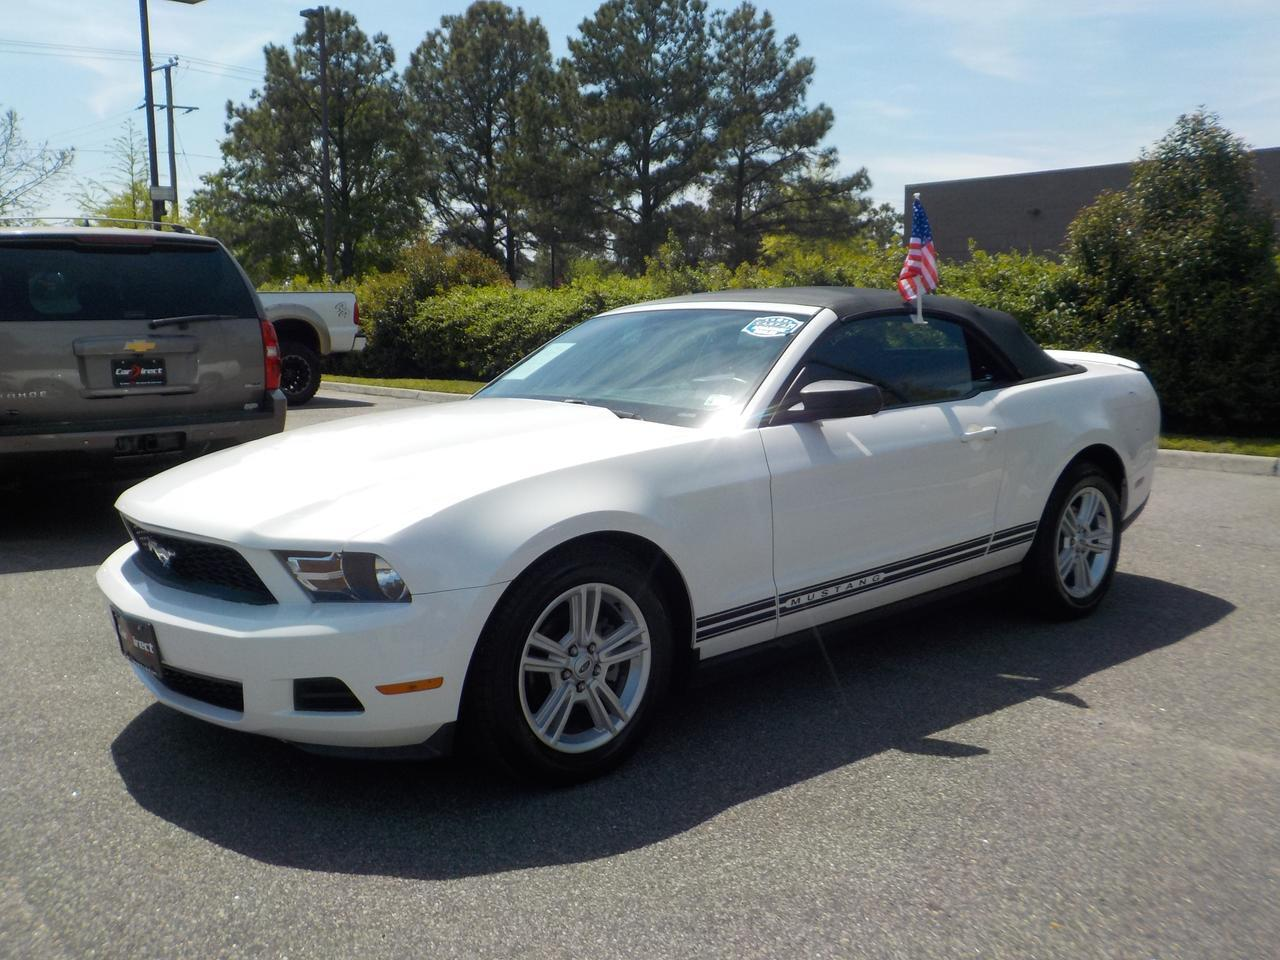 2010 FORD MUSTANG V6 CALIFORNIA SPECIAL CONVERTIBLE, FORD SYNC, CRUISE CONTROL, EXTRA CLEAN,BLUETOOTH, ONLY 93K MILES! Virginia Beach VA